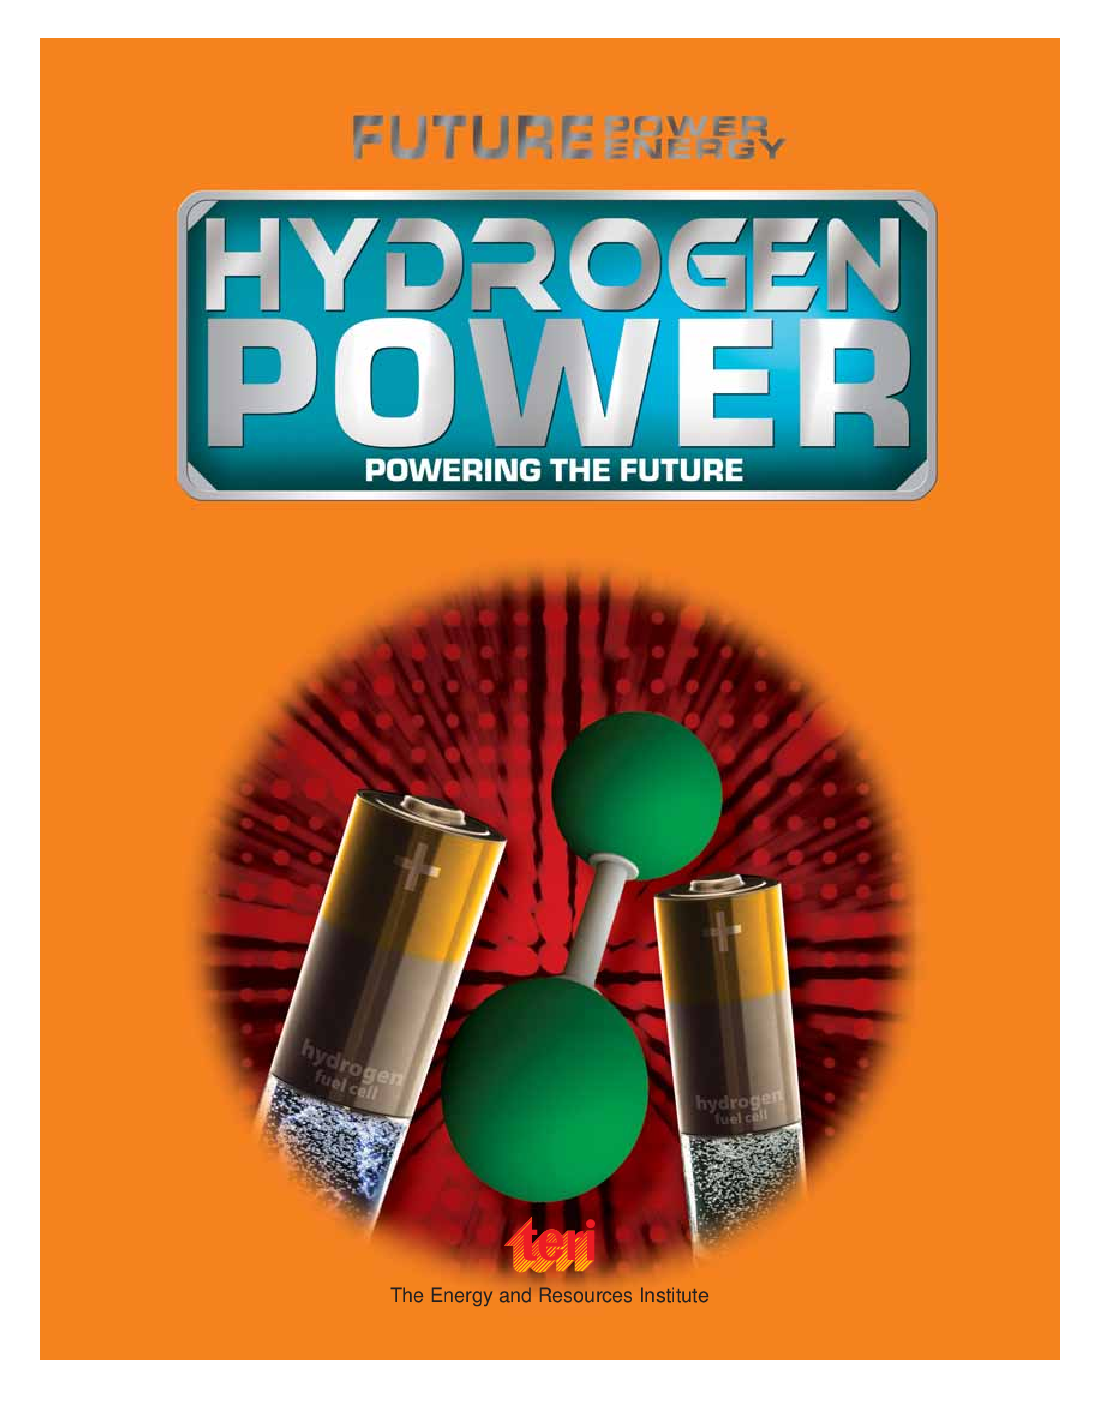 Future Power,Future Energy : Hydrogen Power - Page 4